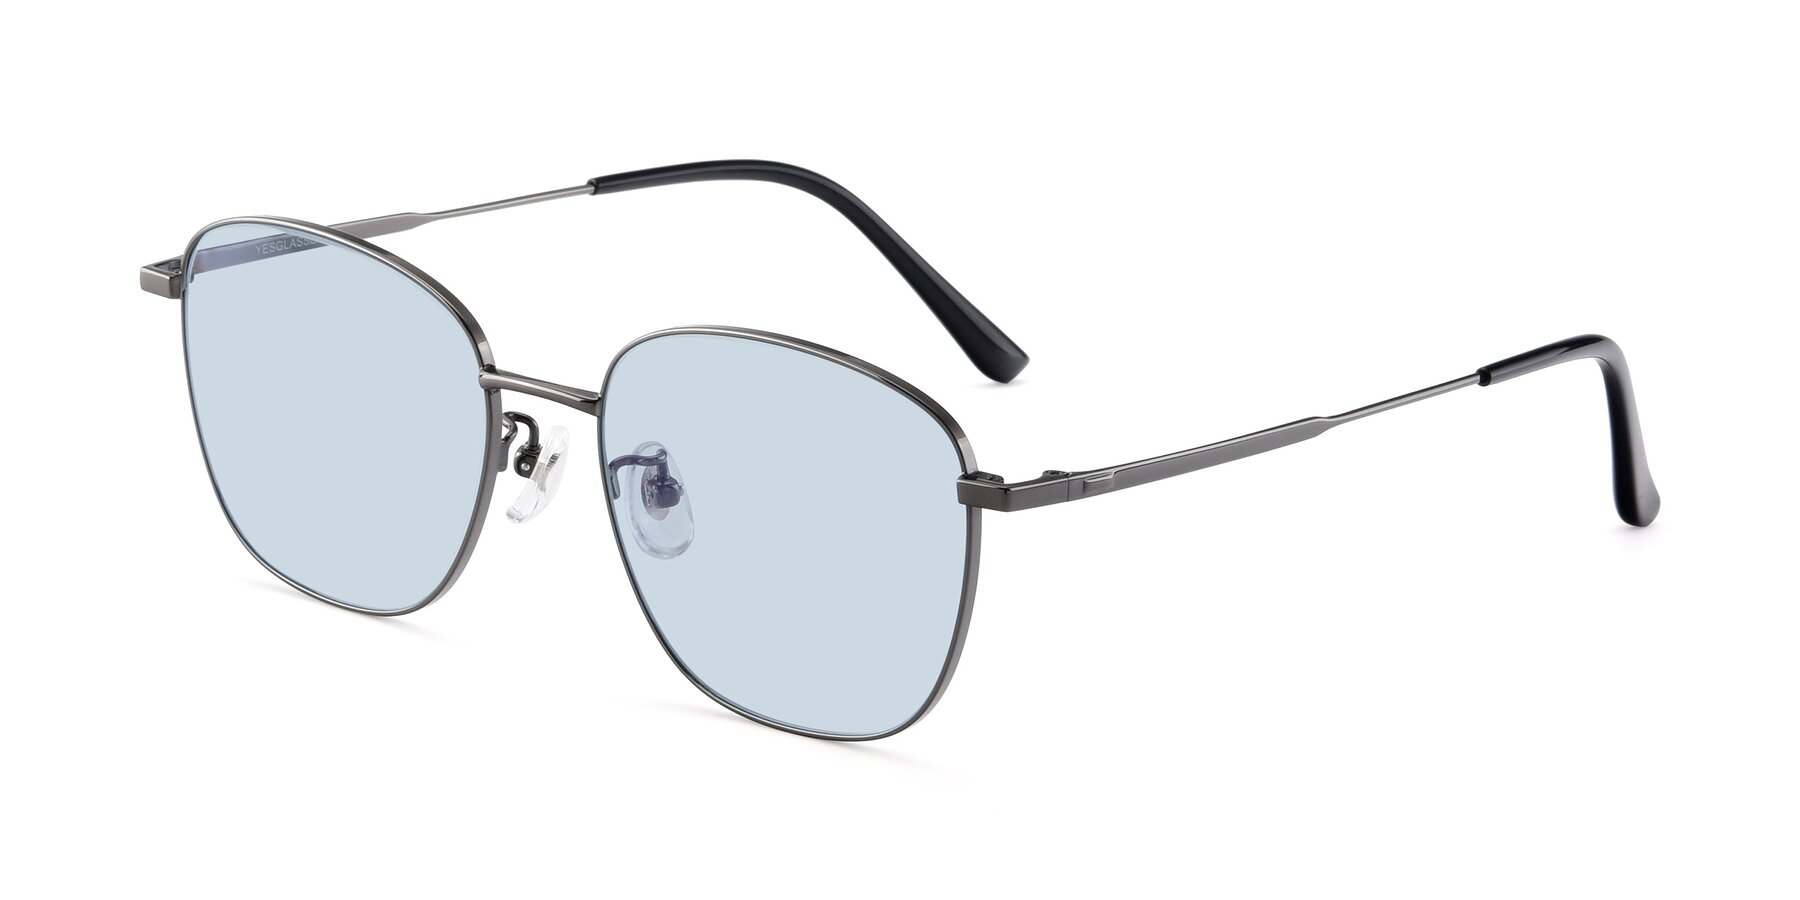 Angle of Tim in Gunmental with Light Blue Tinted Lenses